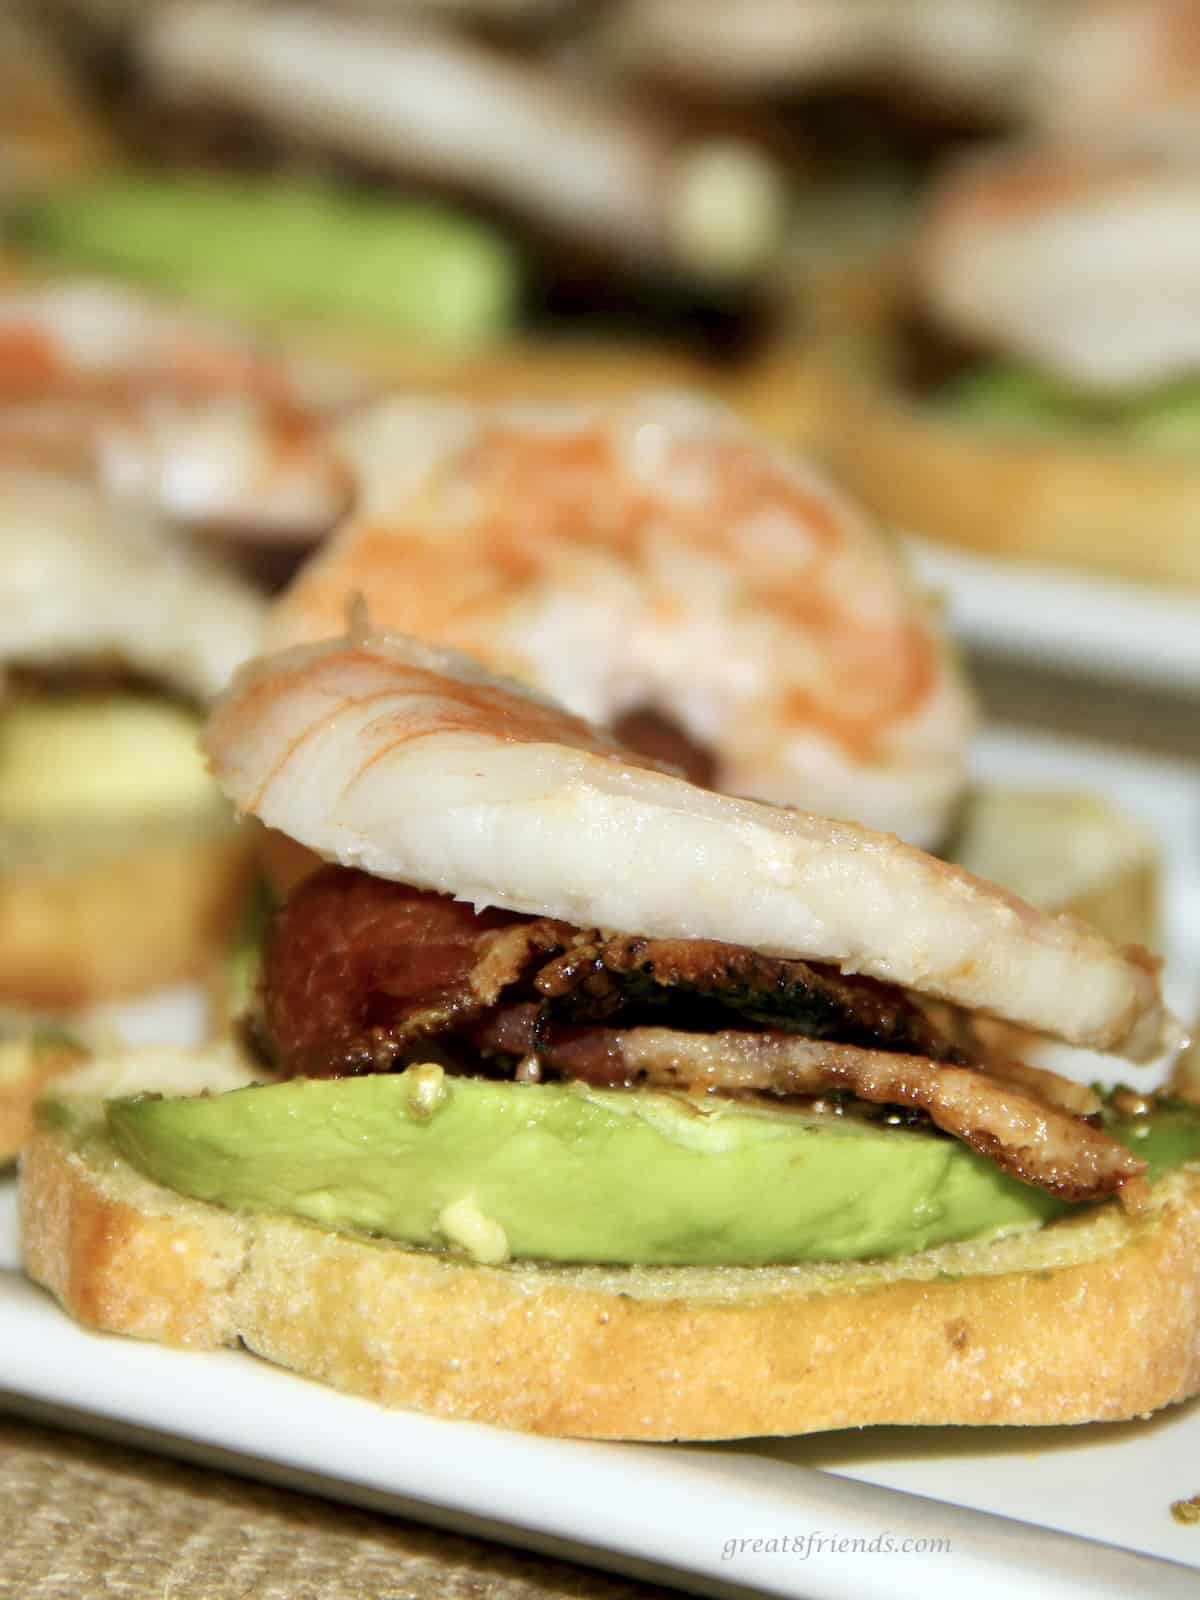 Unclose shot of a toasted piece of French bread with avocado, bacon and shrimp on top.